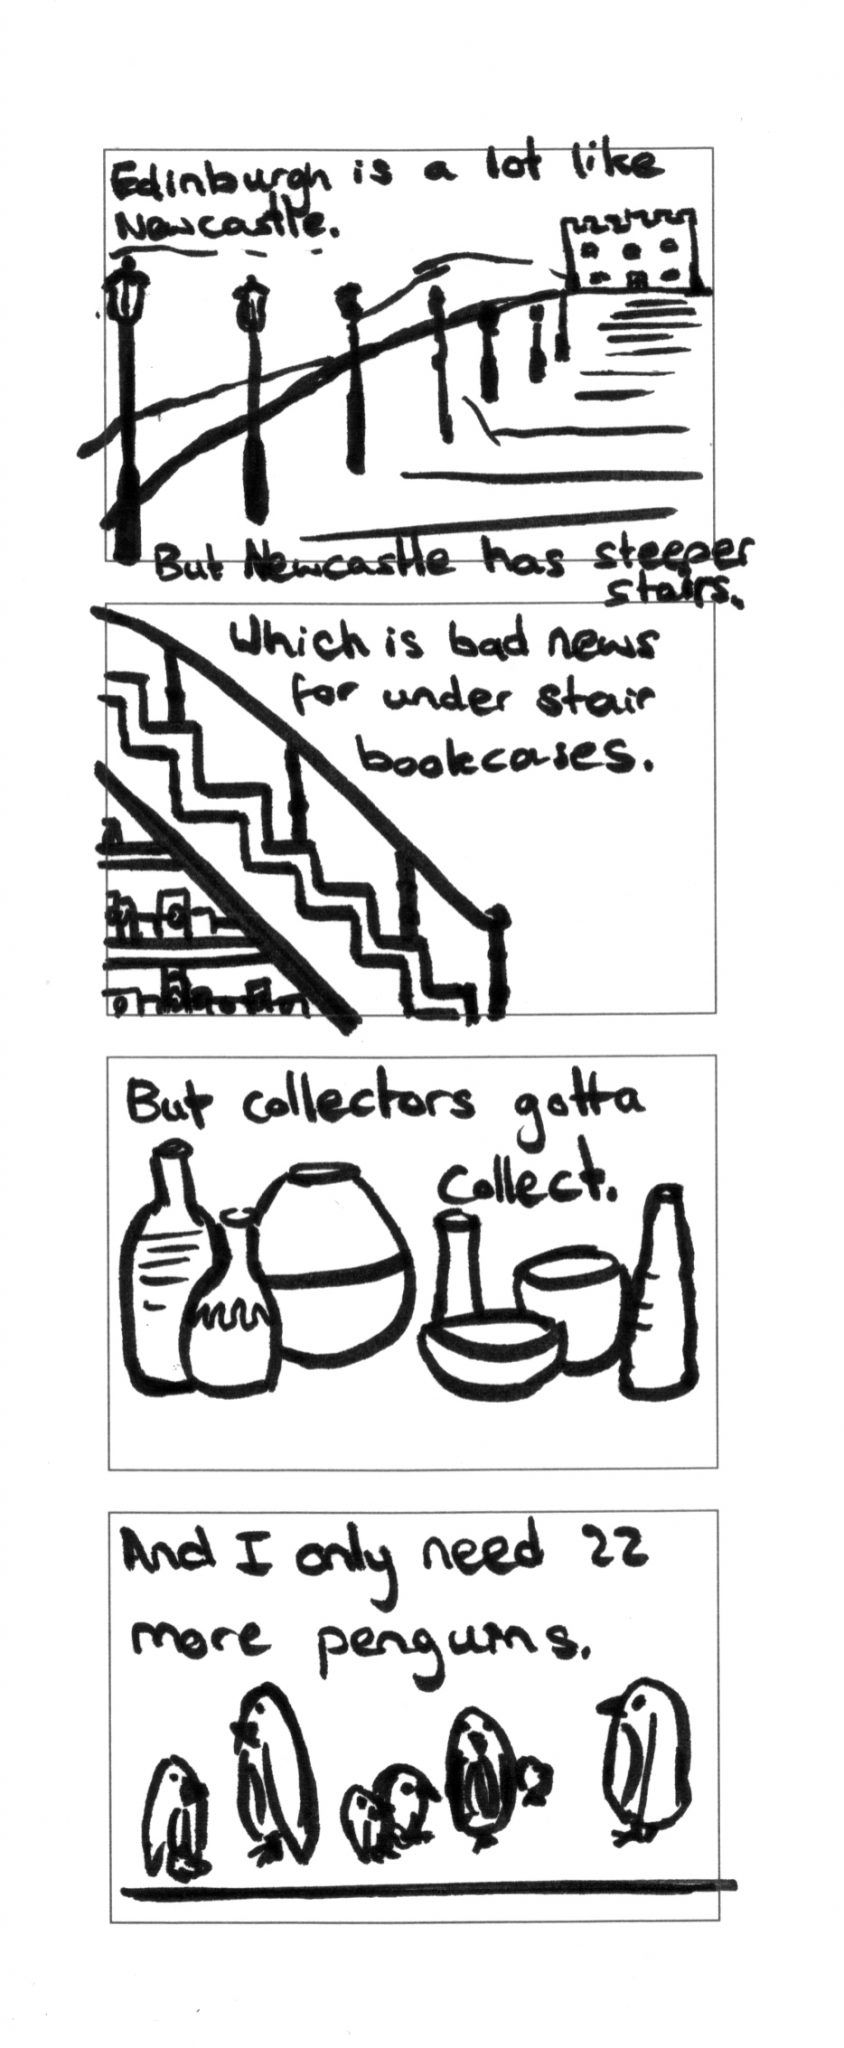 A comic based on a conversation during the Baltic Book Fair about how the stairs in houses in Newcastle are different to those in Edinburgh and how that makes it harder to fit bookcases to display vase collections or Penguin books, but I drew actual penguins. It was an unusual conversation.